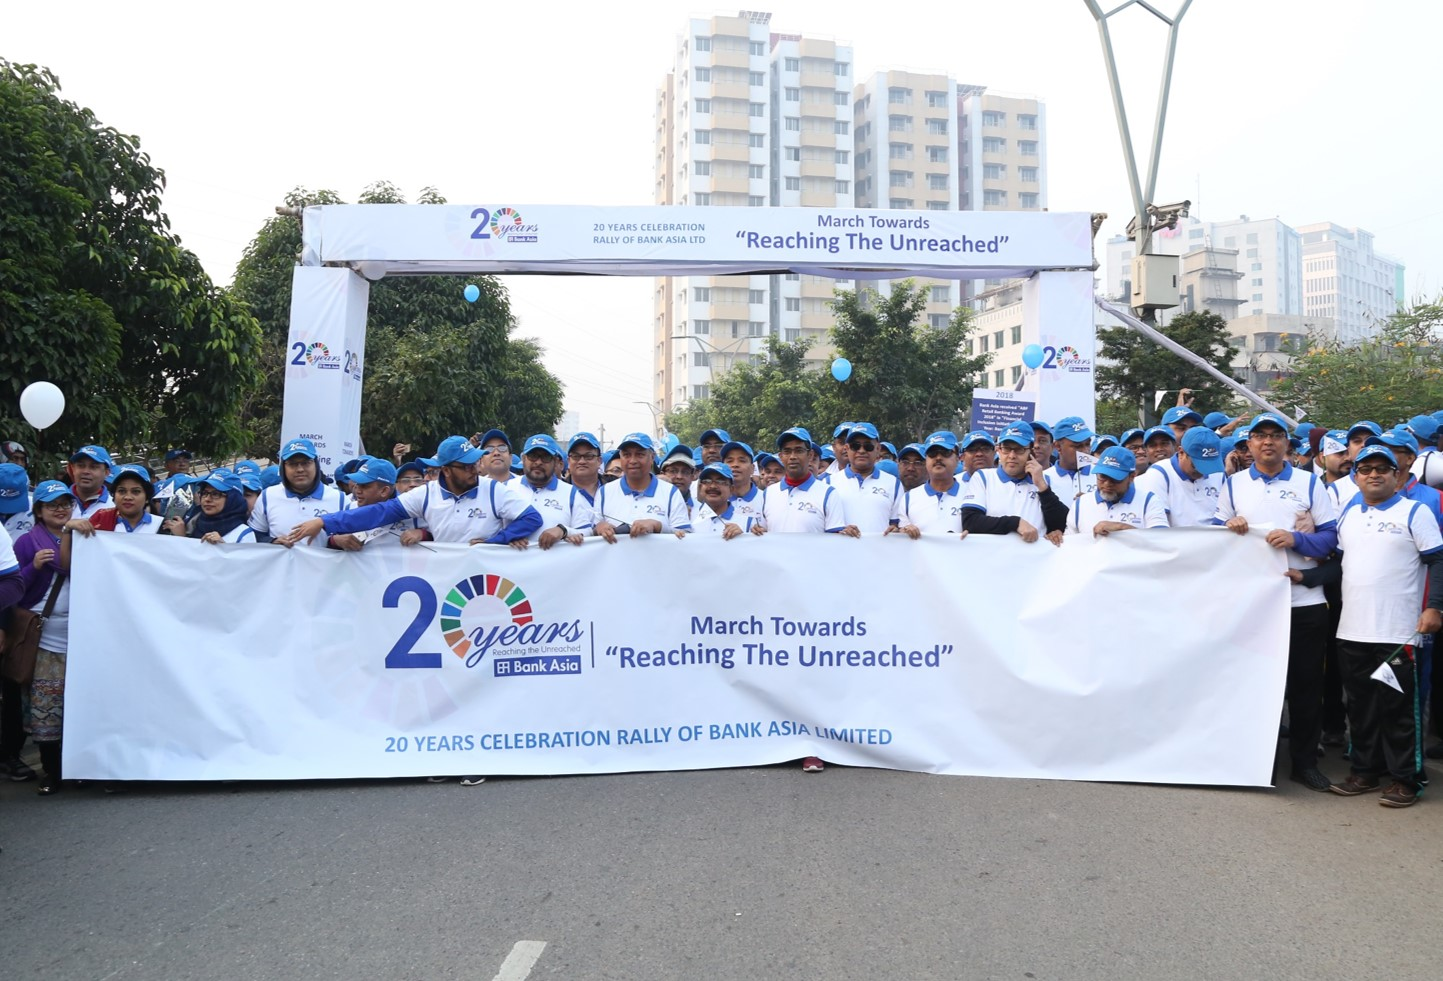 Bank Asia arranged 20th Anniversary Celebration Rally